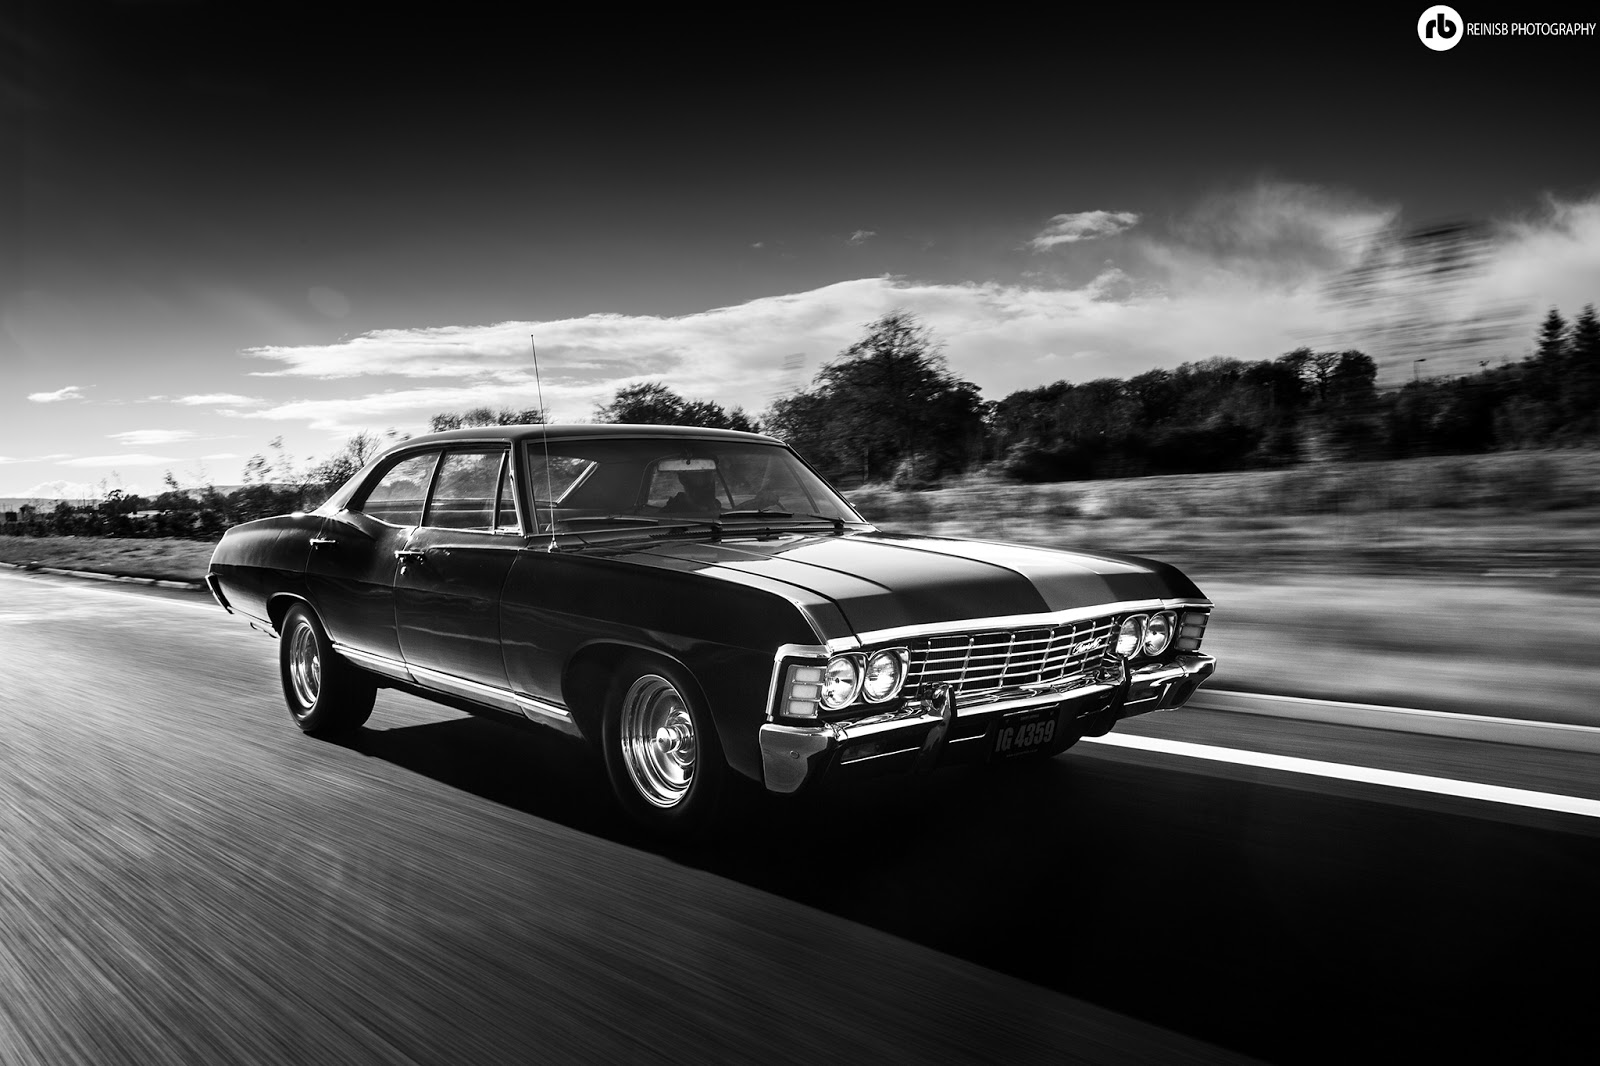 Reinis Babrovskis Photography 1967 Chevy Impala Supernatural